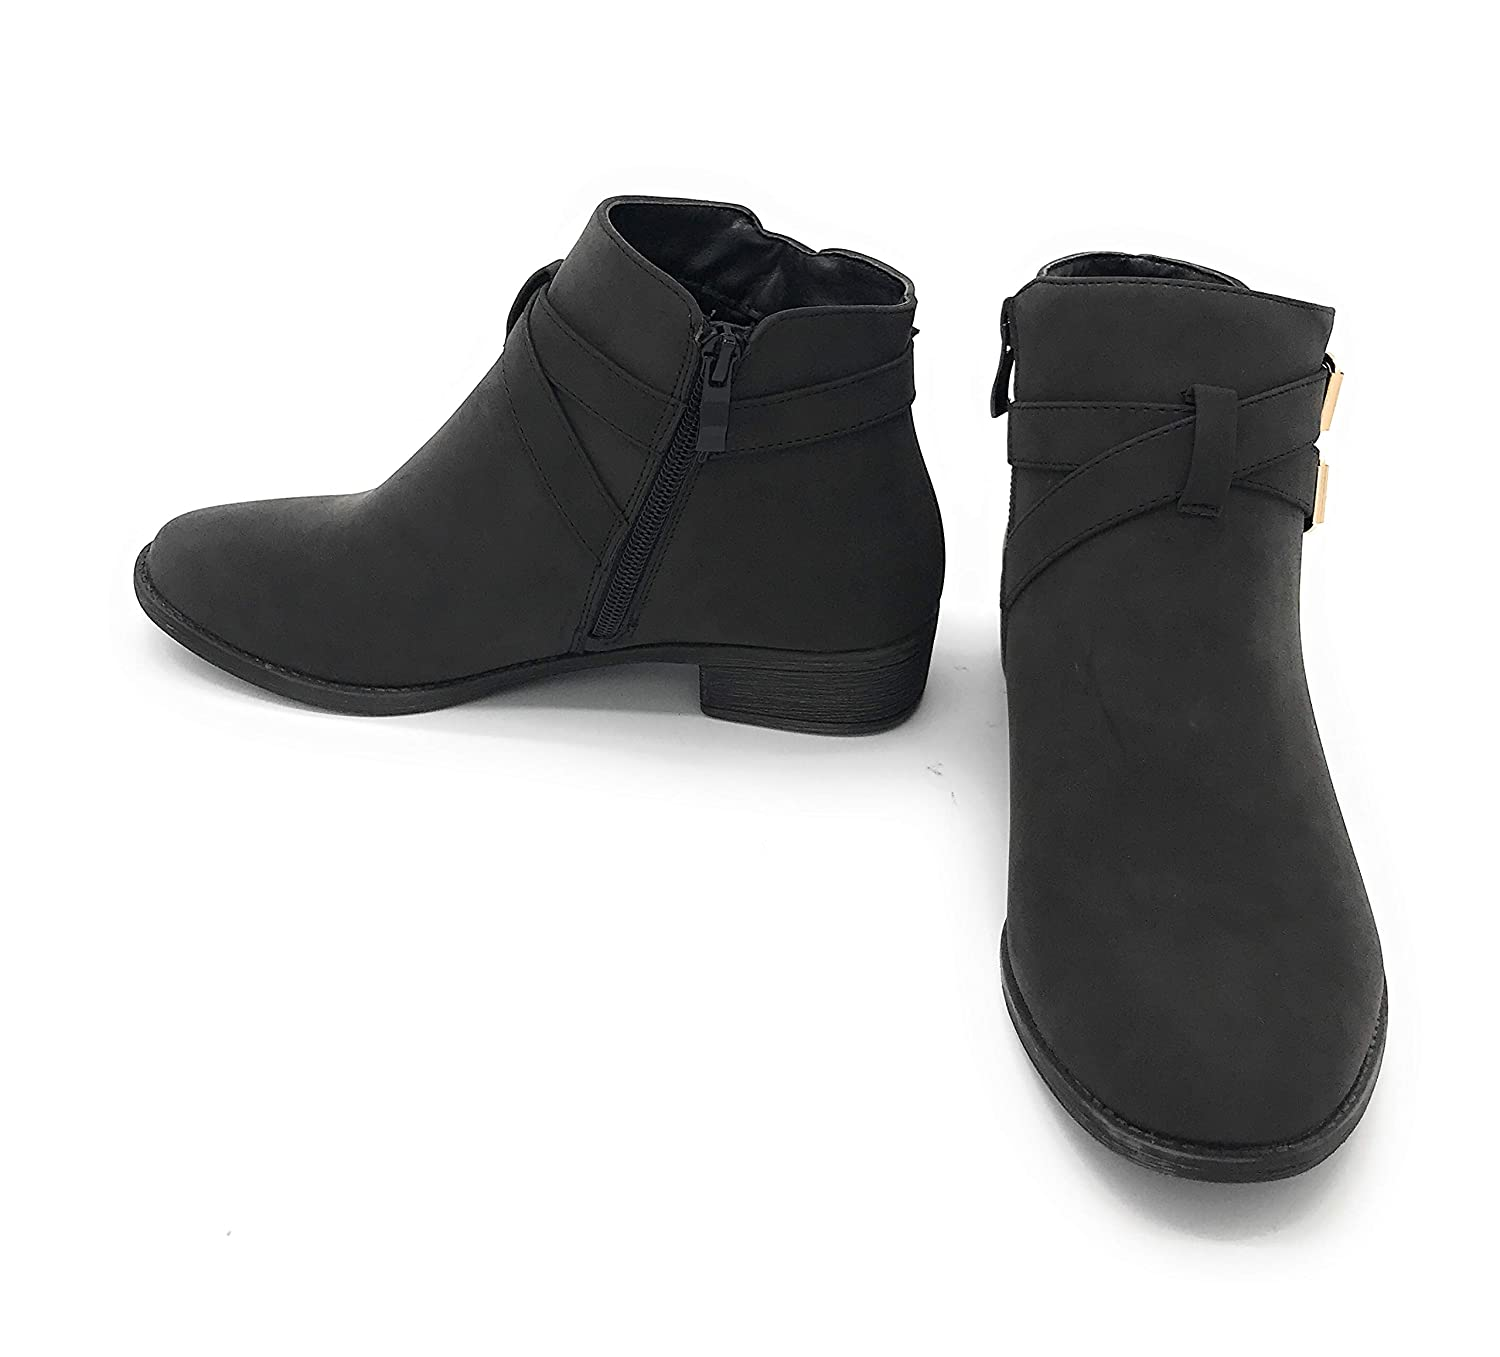 03black bluee Berry EASY21 Women Fashion Ankle Boots Casual Short Bootie shoes